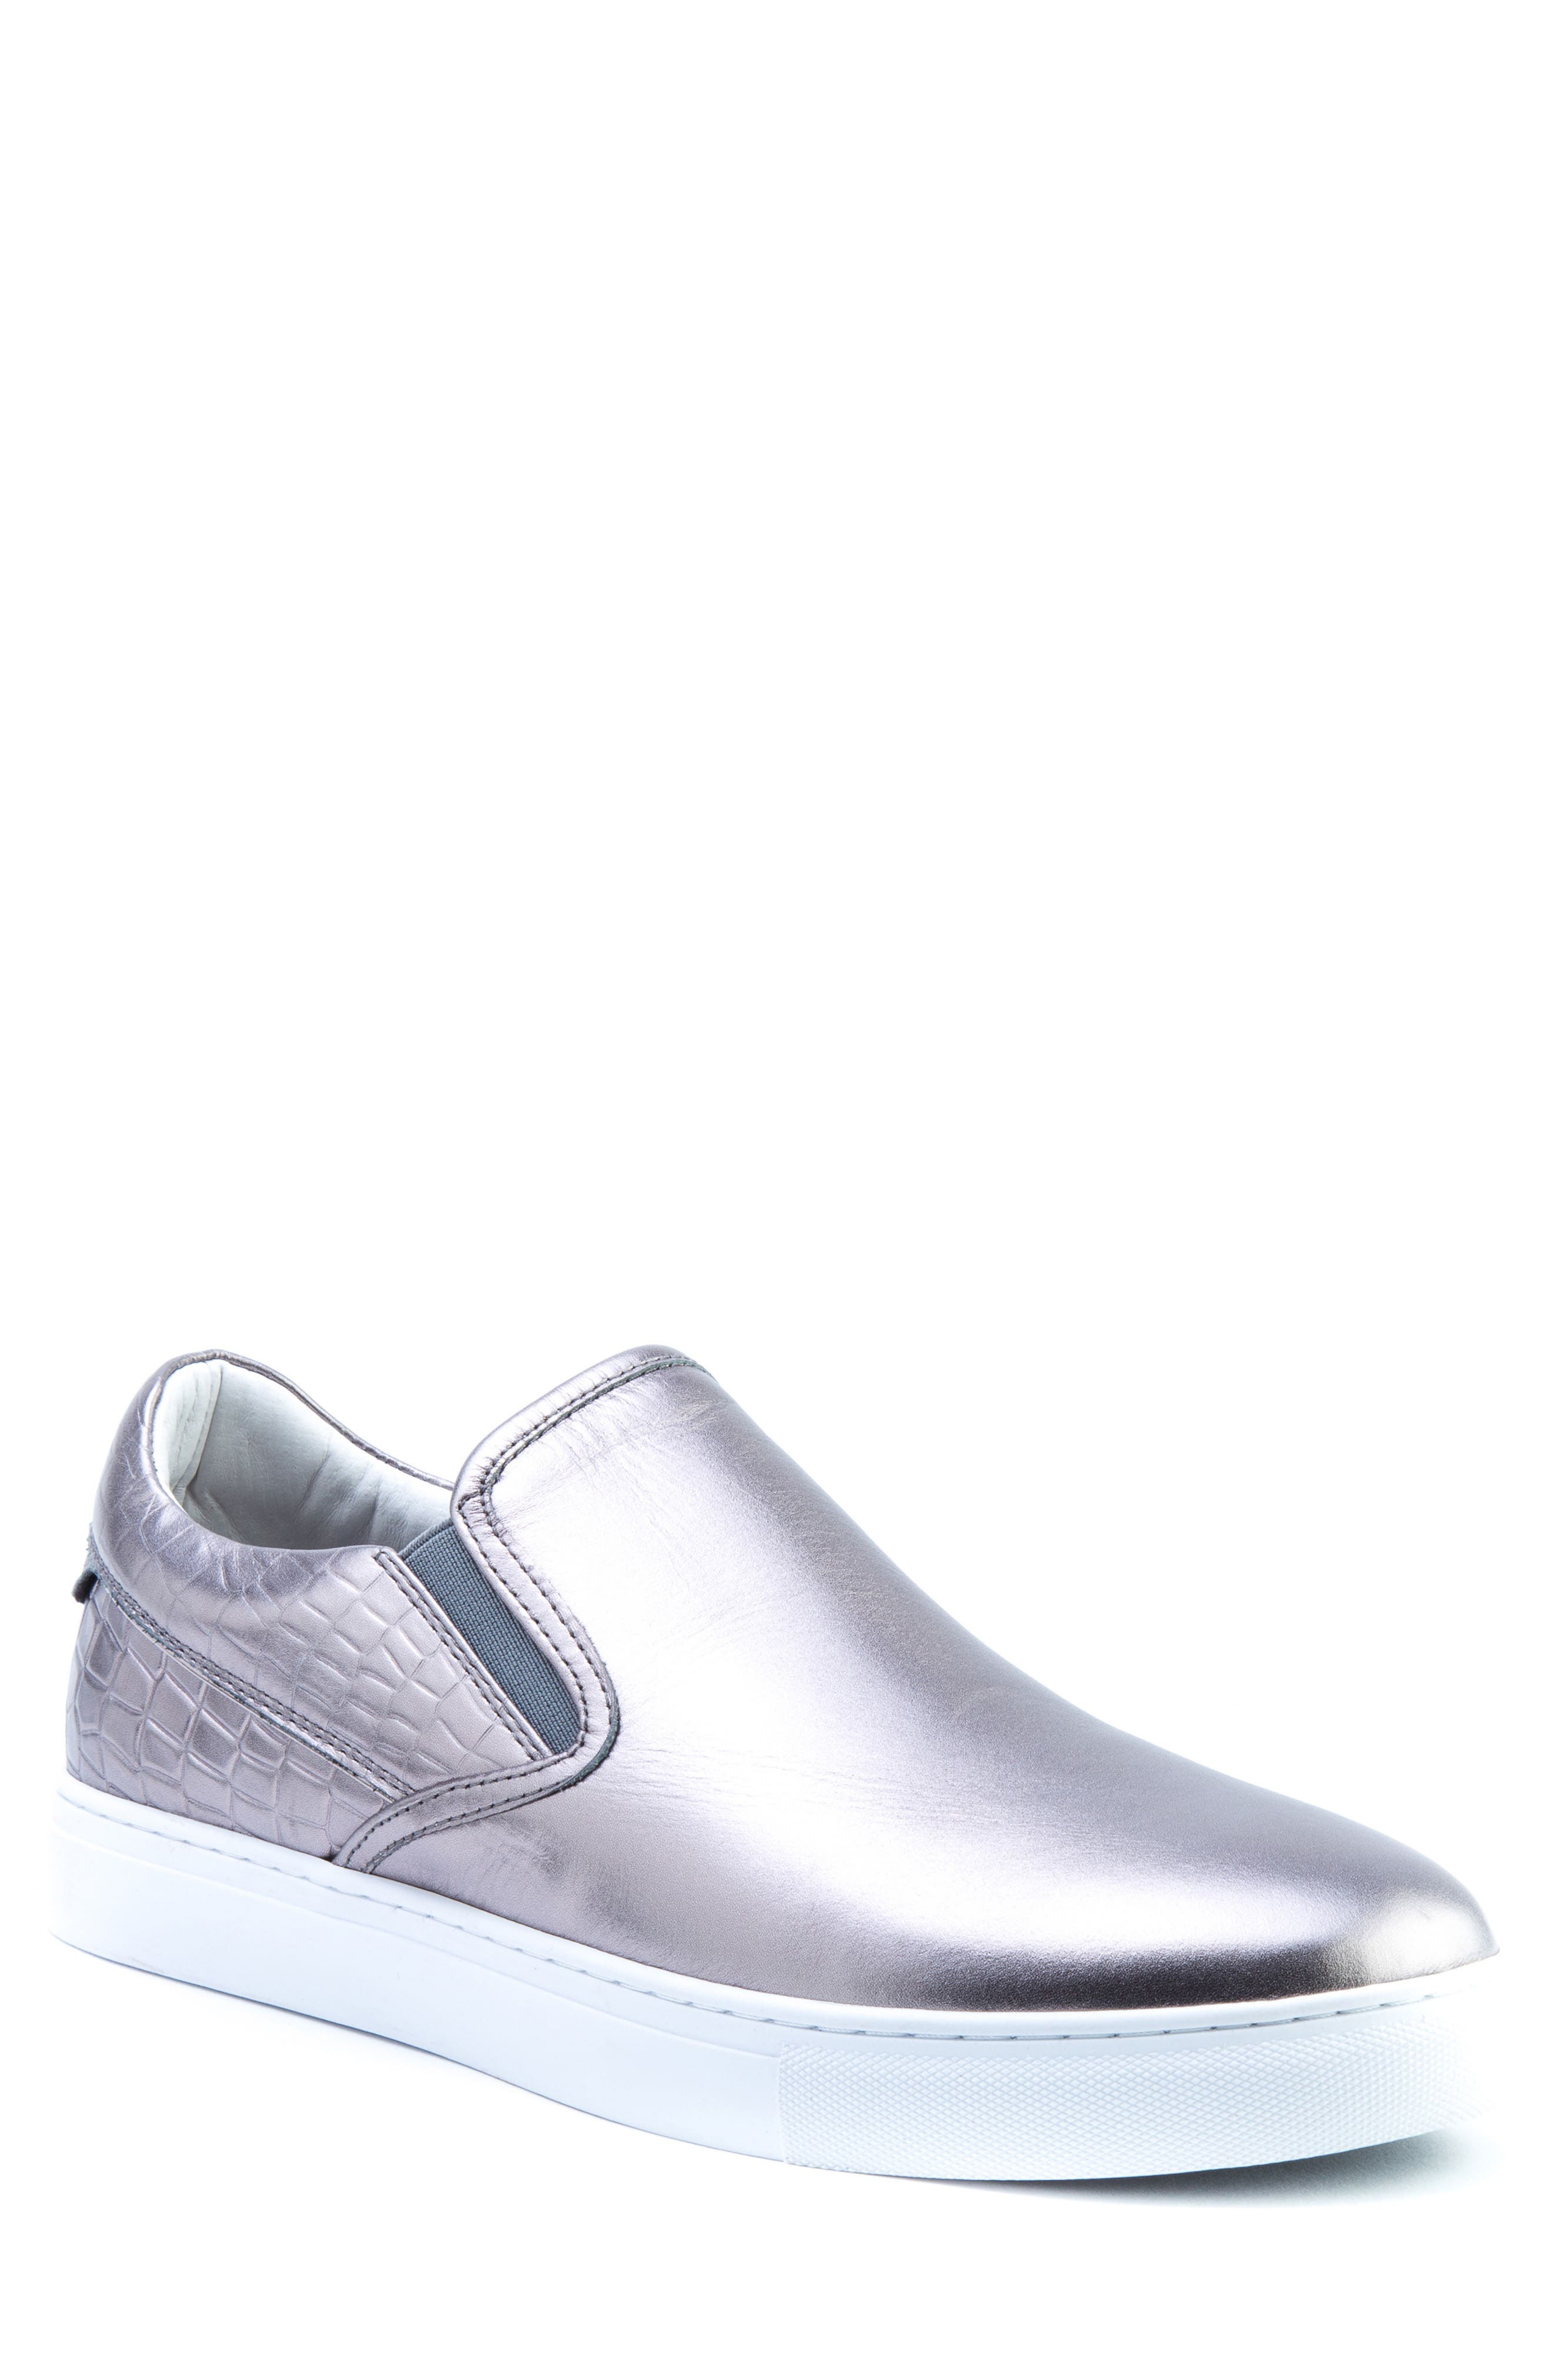 Main Image - Badgley Mischka Dean Sneaker (Men)